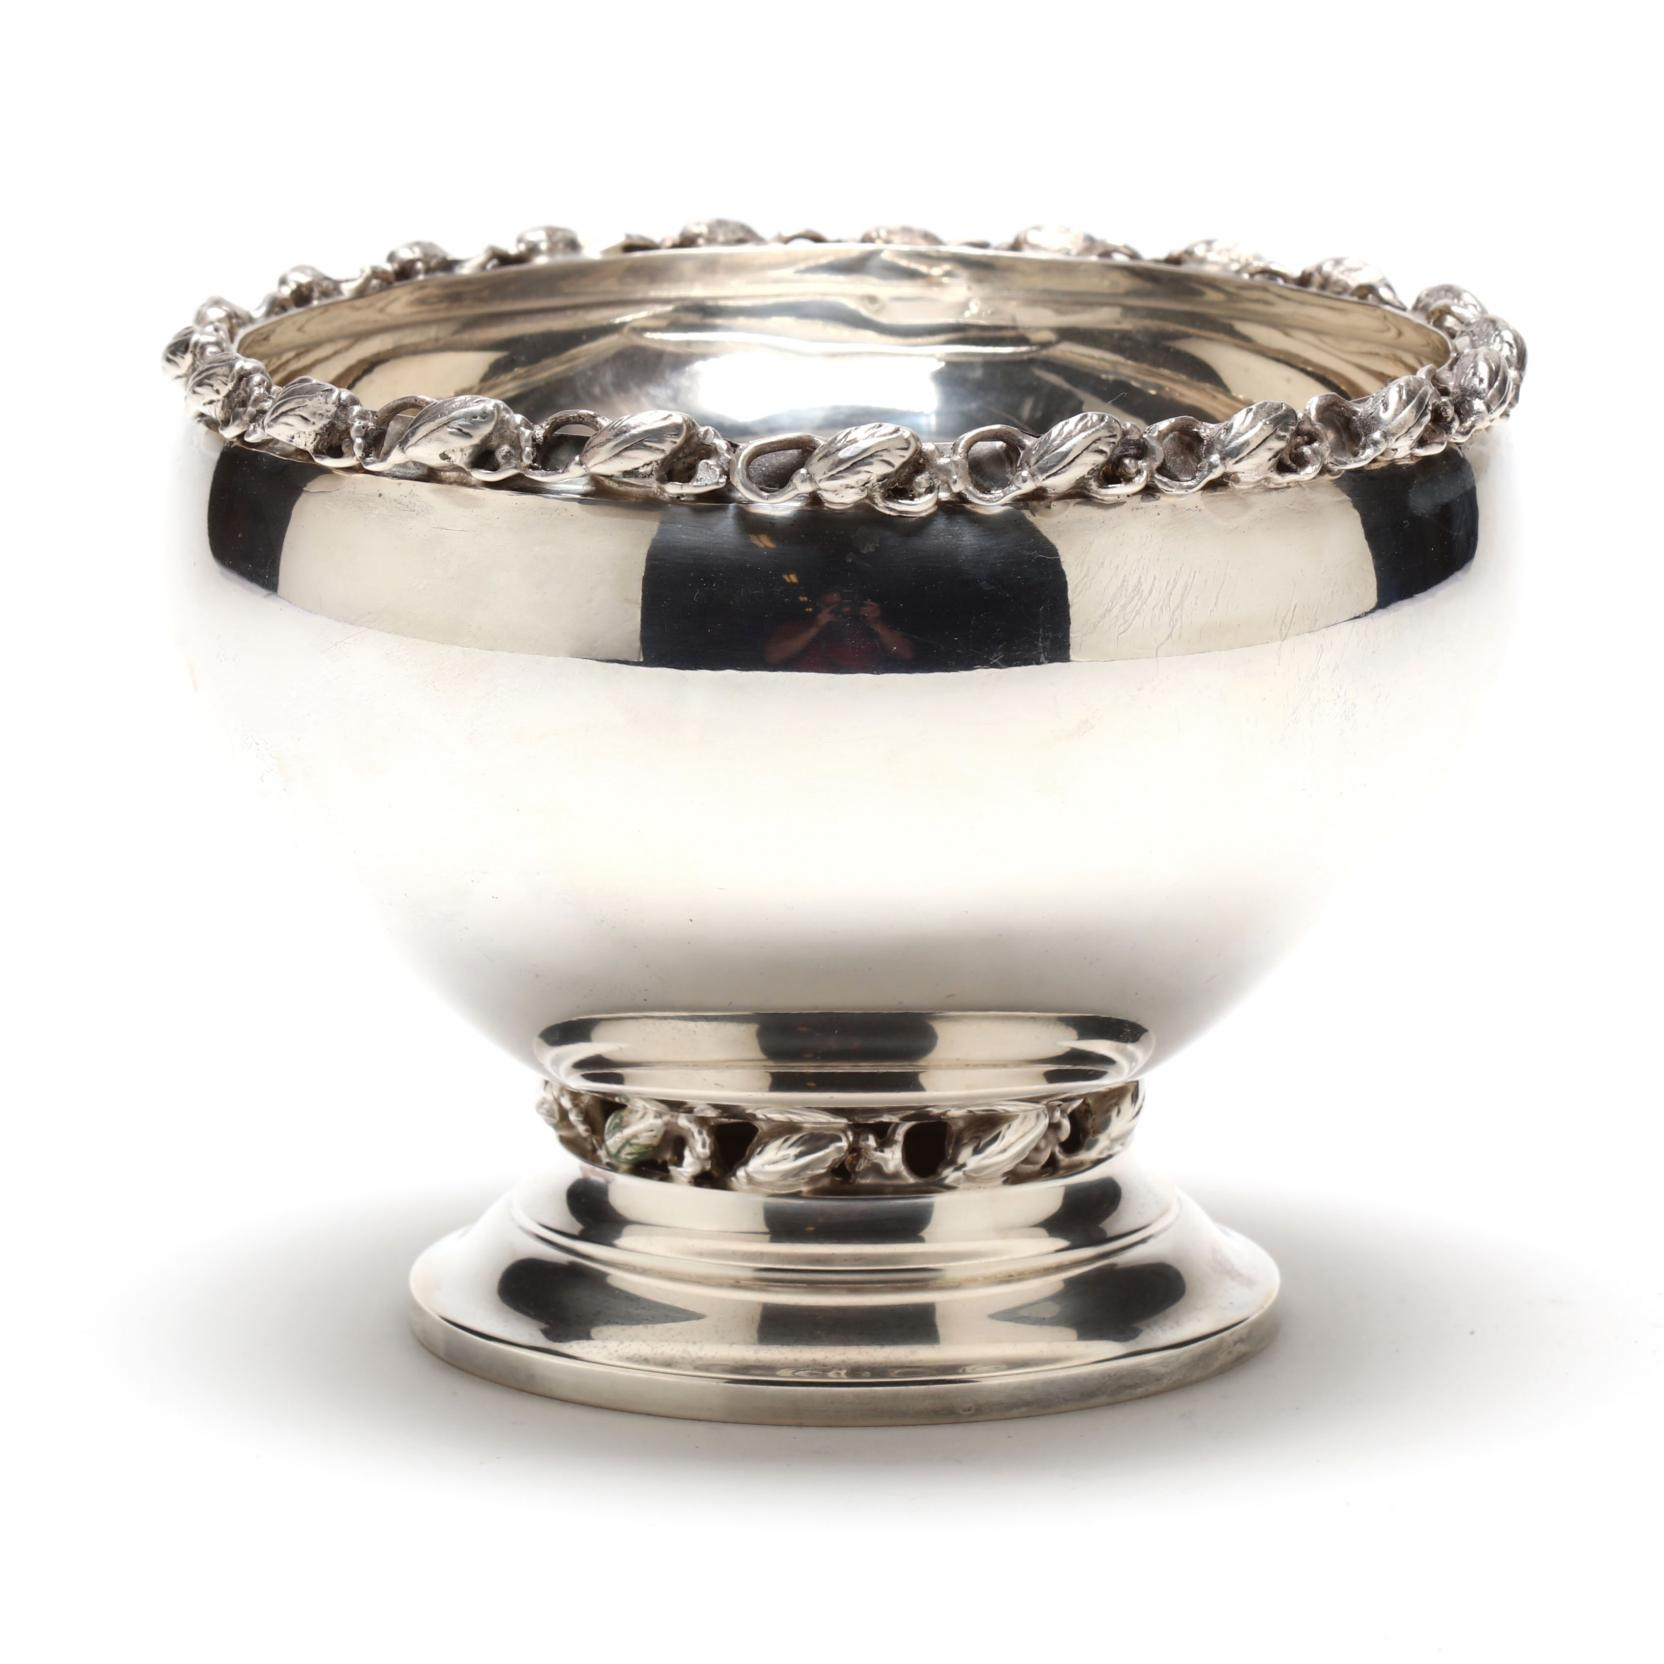 a-sterling-silver-bowl-in-the-jensen-style